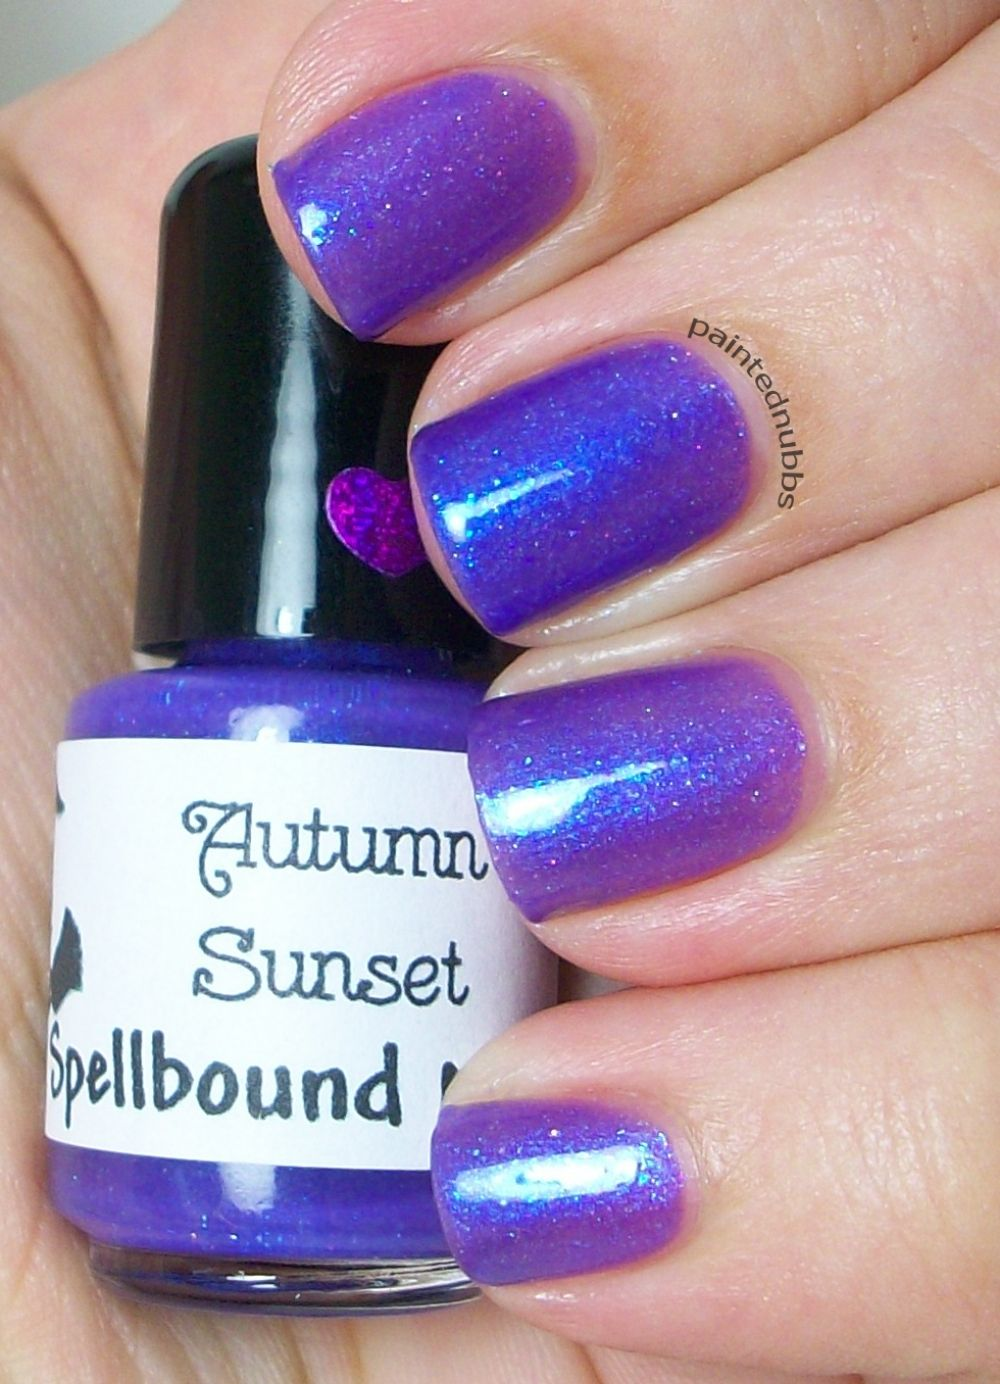 Autumn Sunset Is A Purple To Blue Shift Polish With